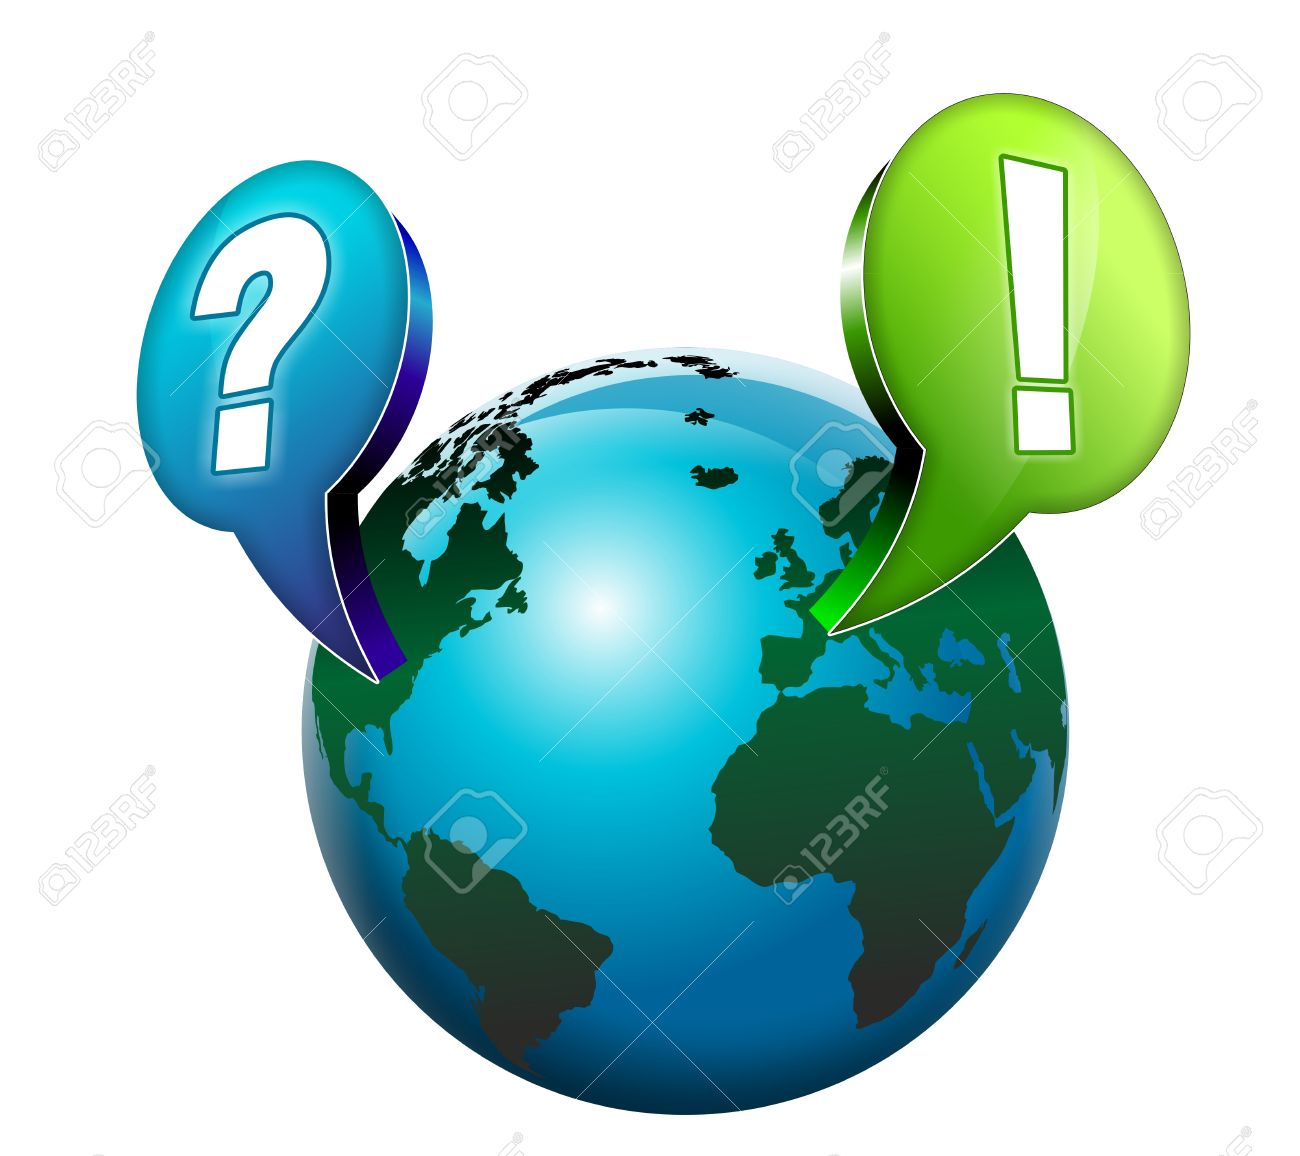 Image result for globe with question mark